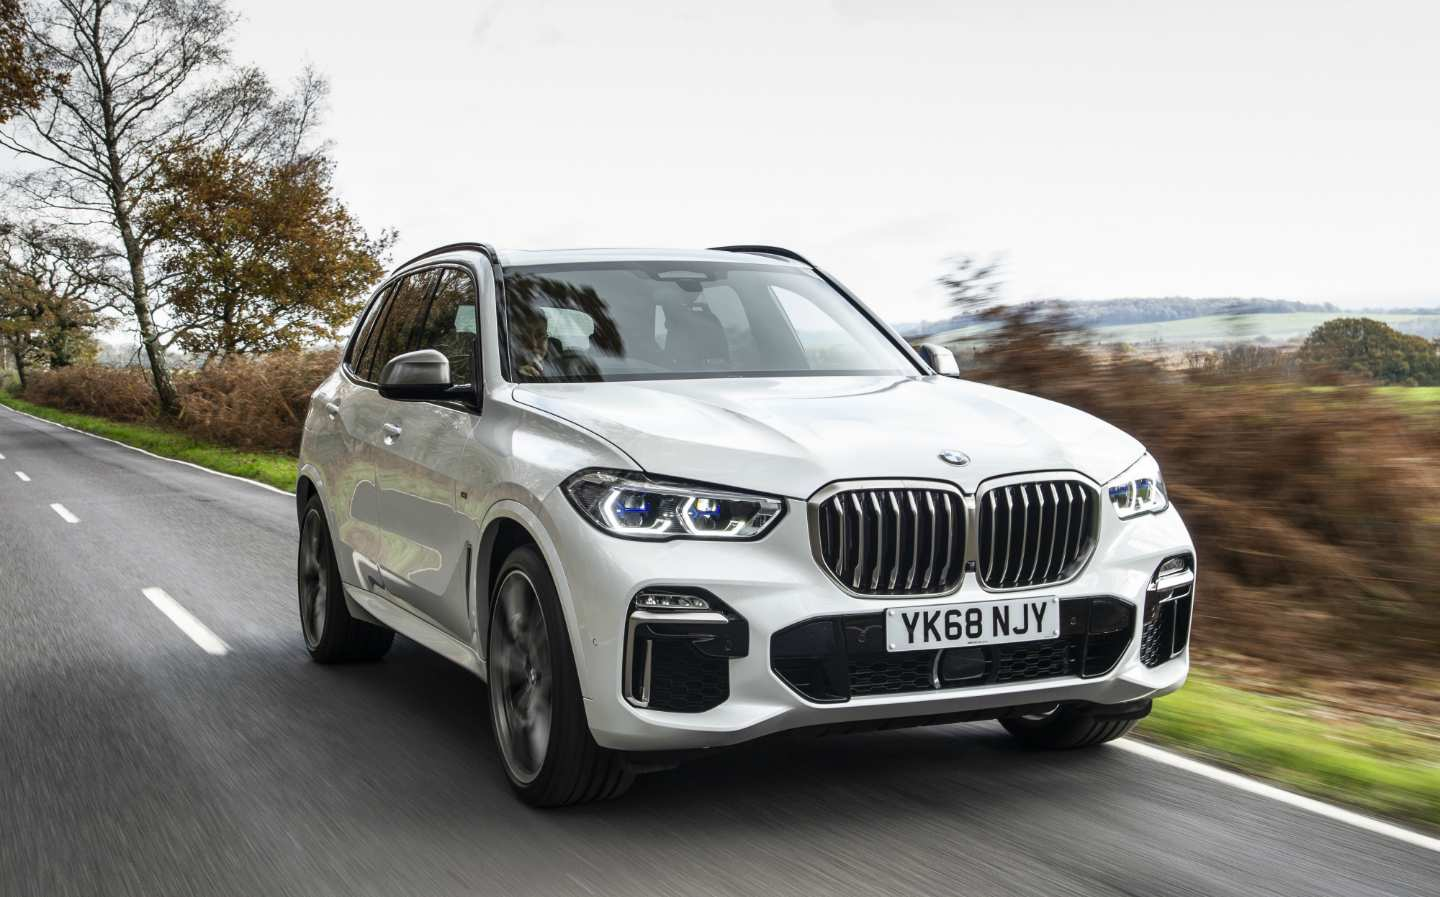 43 New When Is The Bmw X5 2019 Release Date Engine Prices for When Is The Bmw X5 2019 Release Date Engine